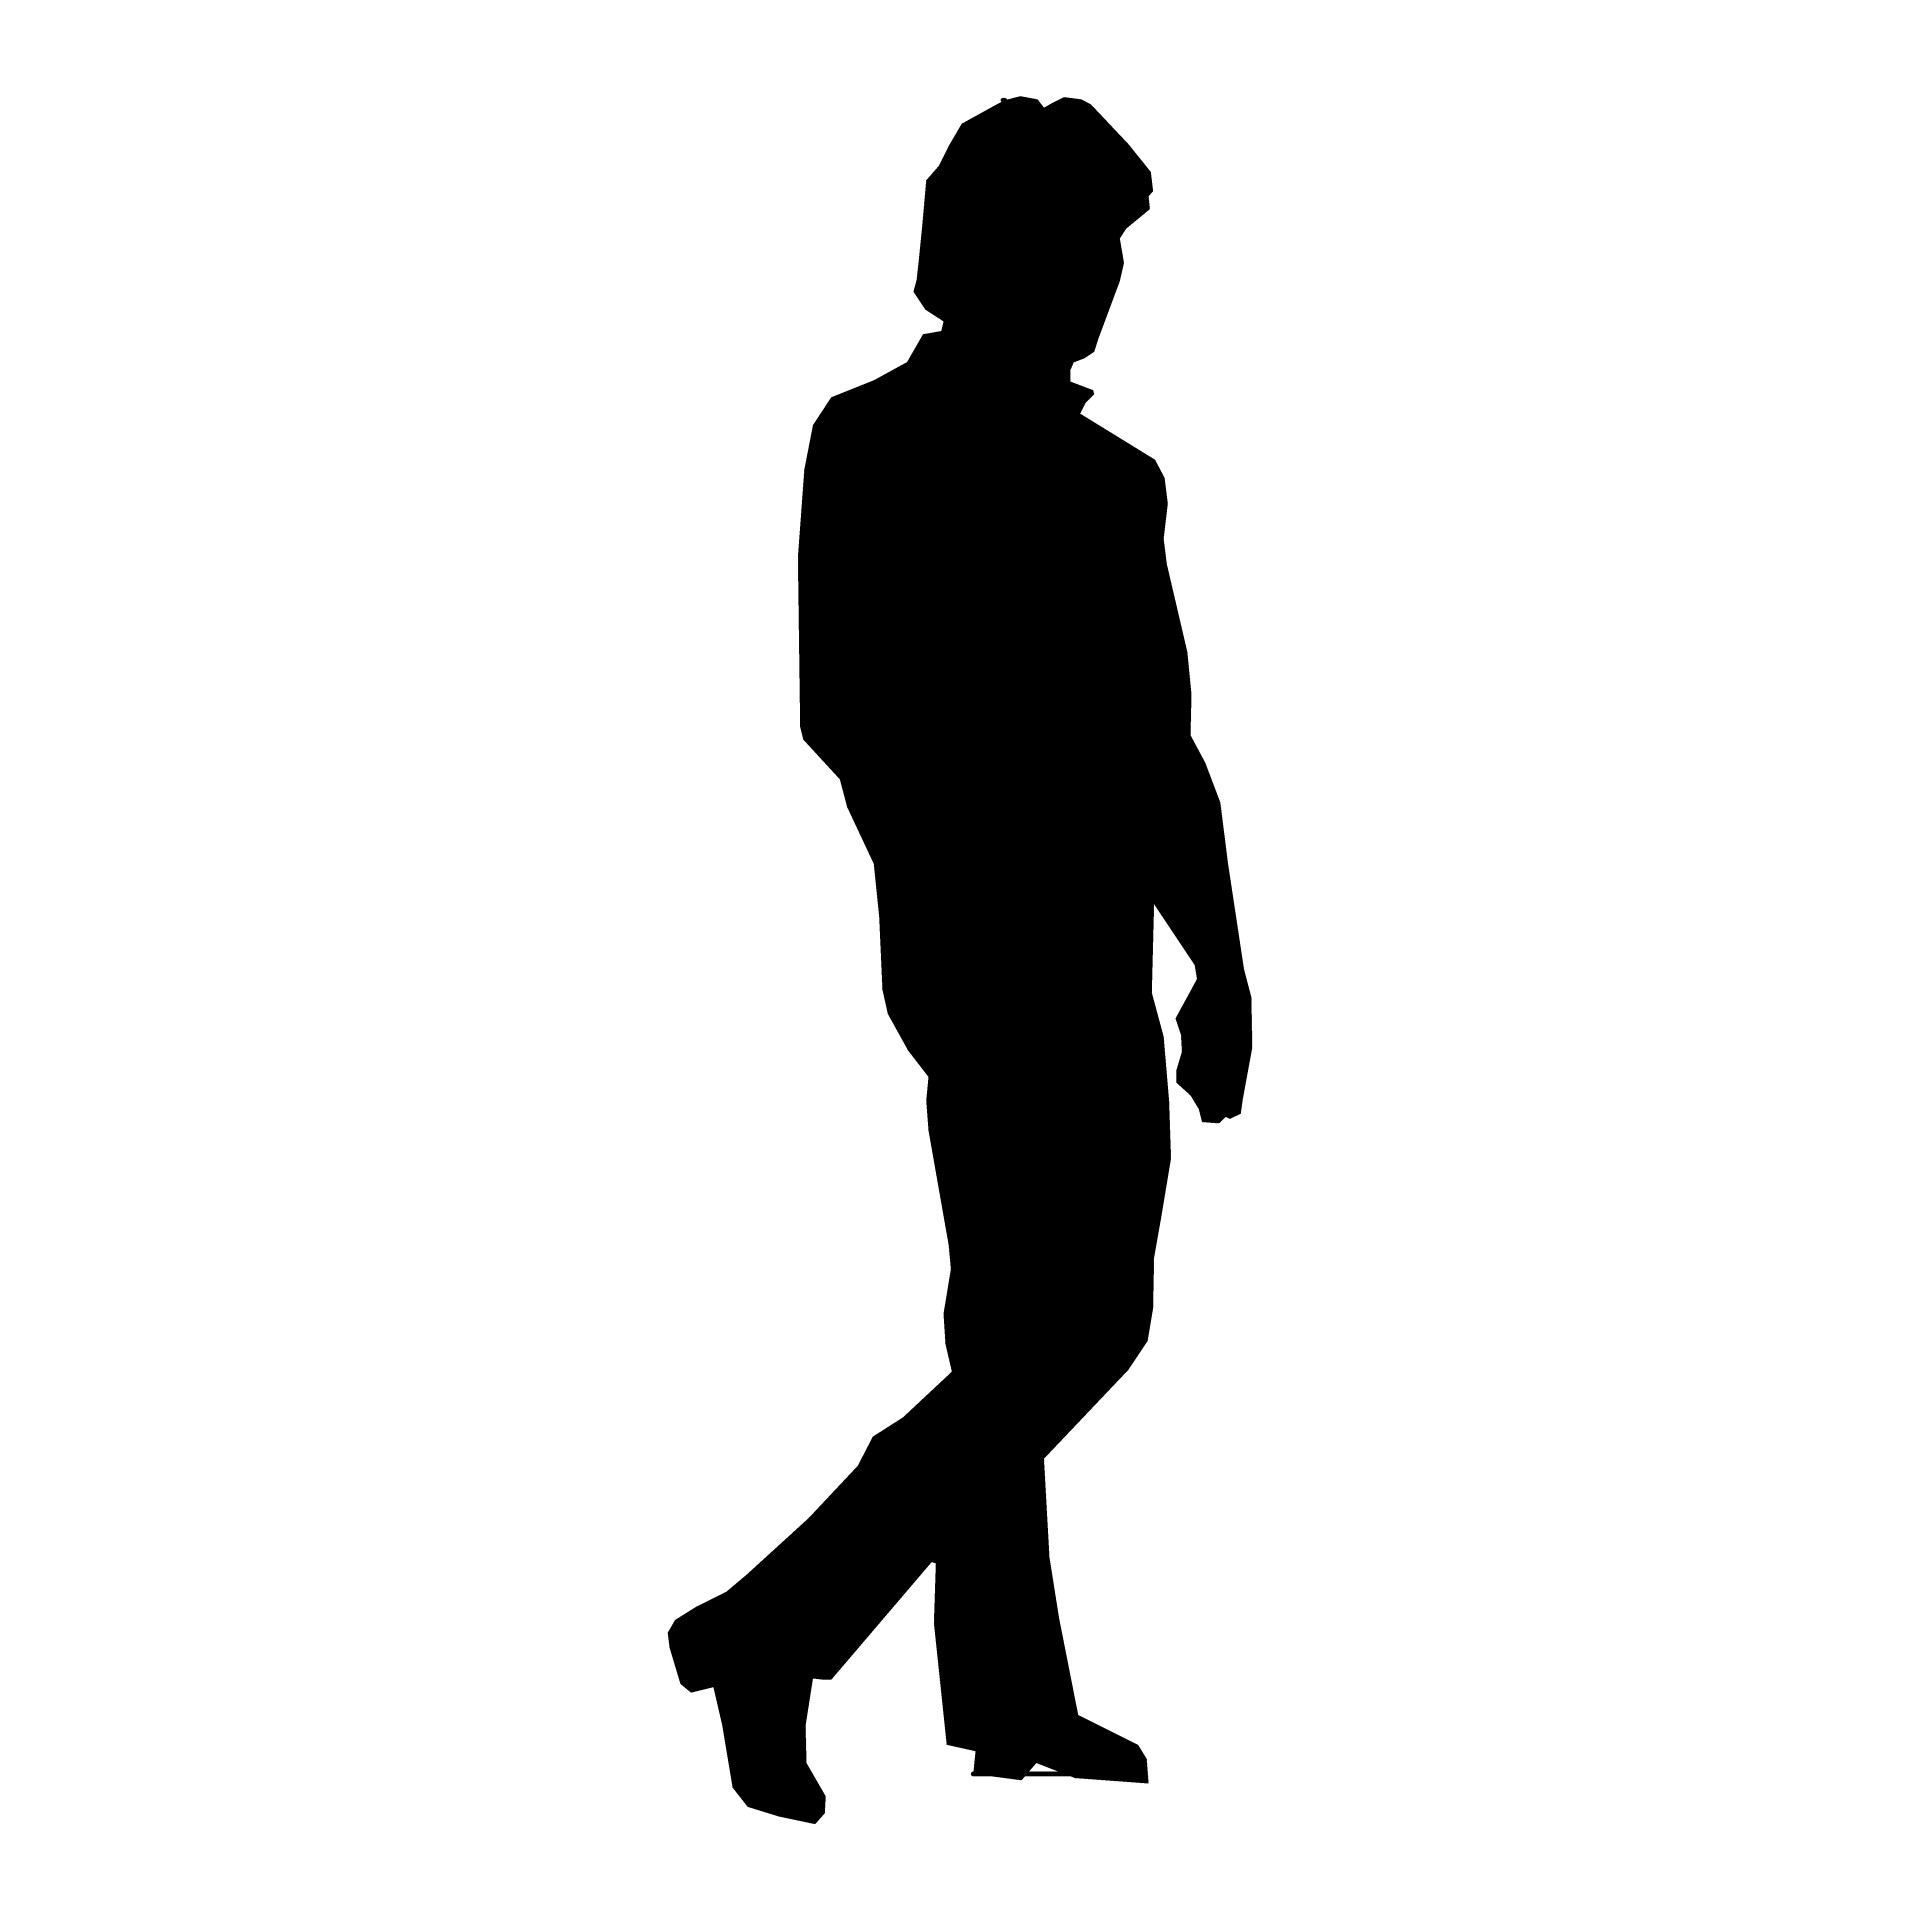 Suit clipart man shadow  Silhouette Walking More Man